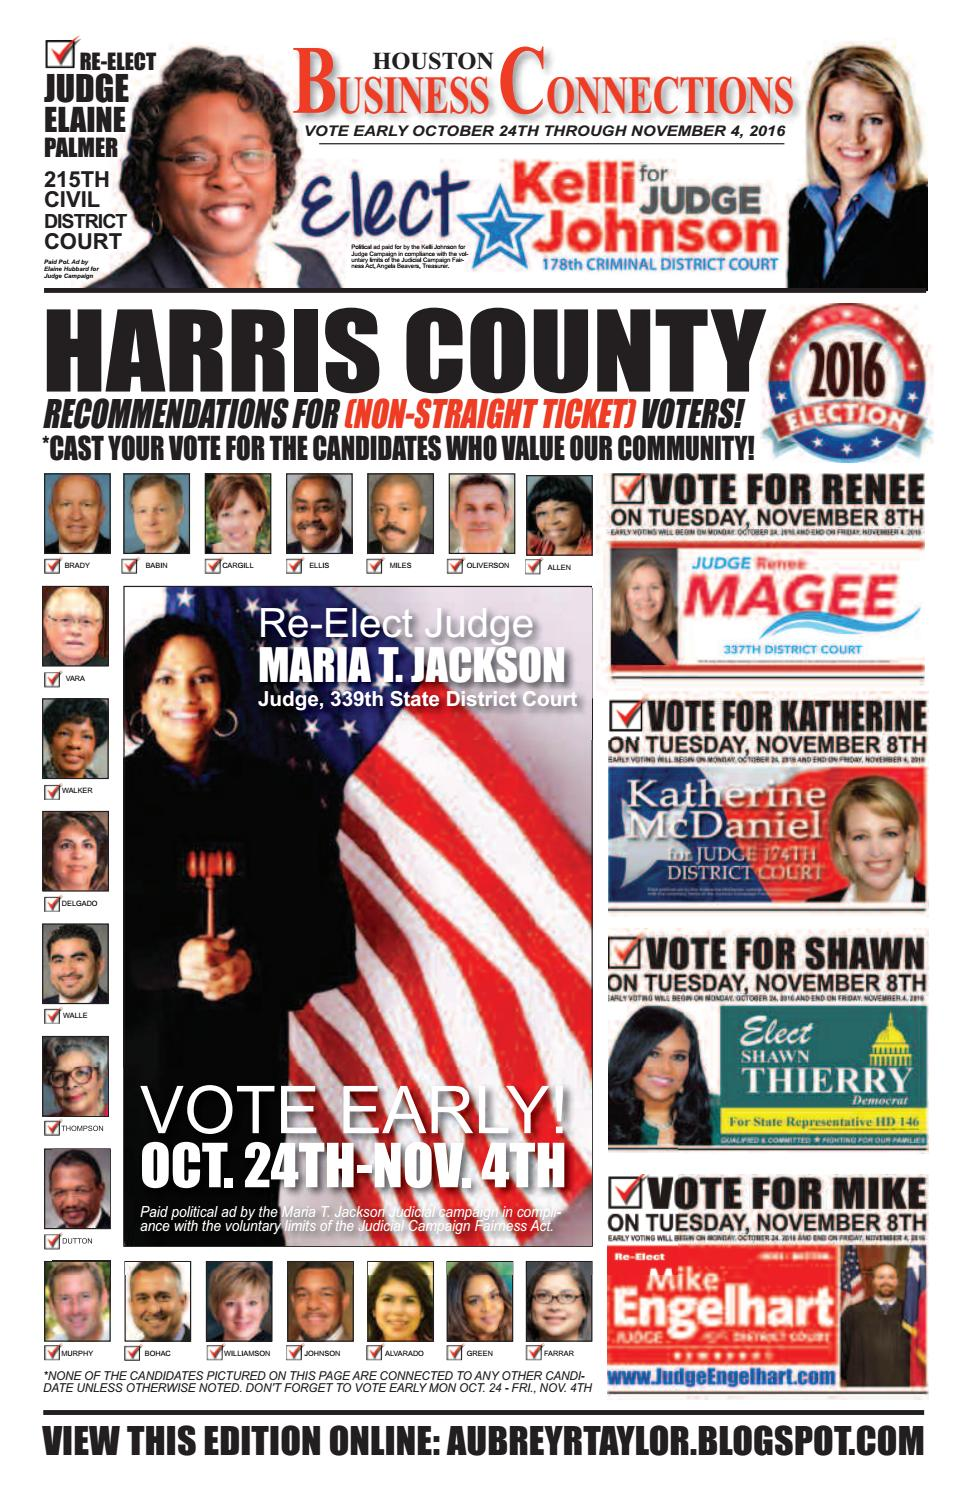 District judge 174th judicial district - 2016 Early Voting Edition Of Houston Business Connections Newspaper By Aubrey R Taylor Communications Issuu